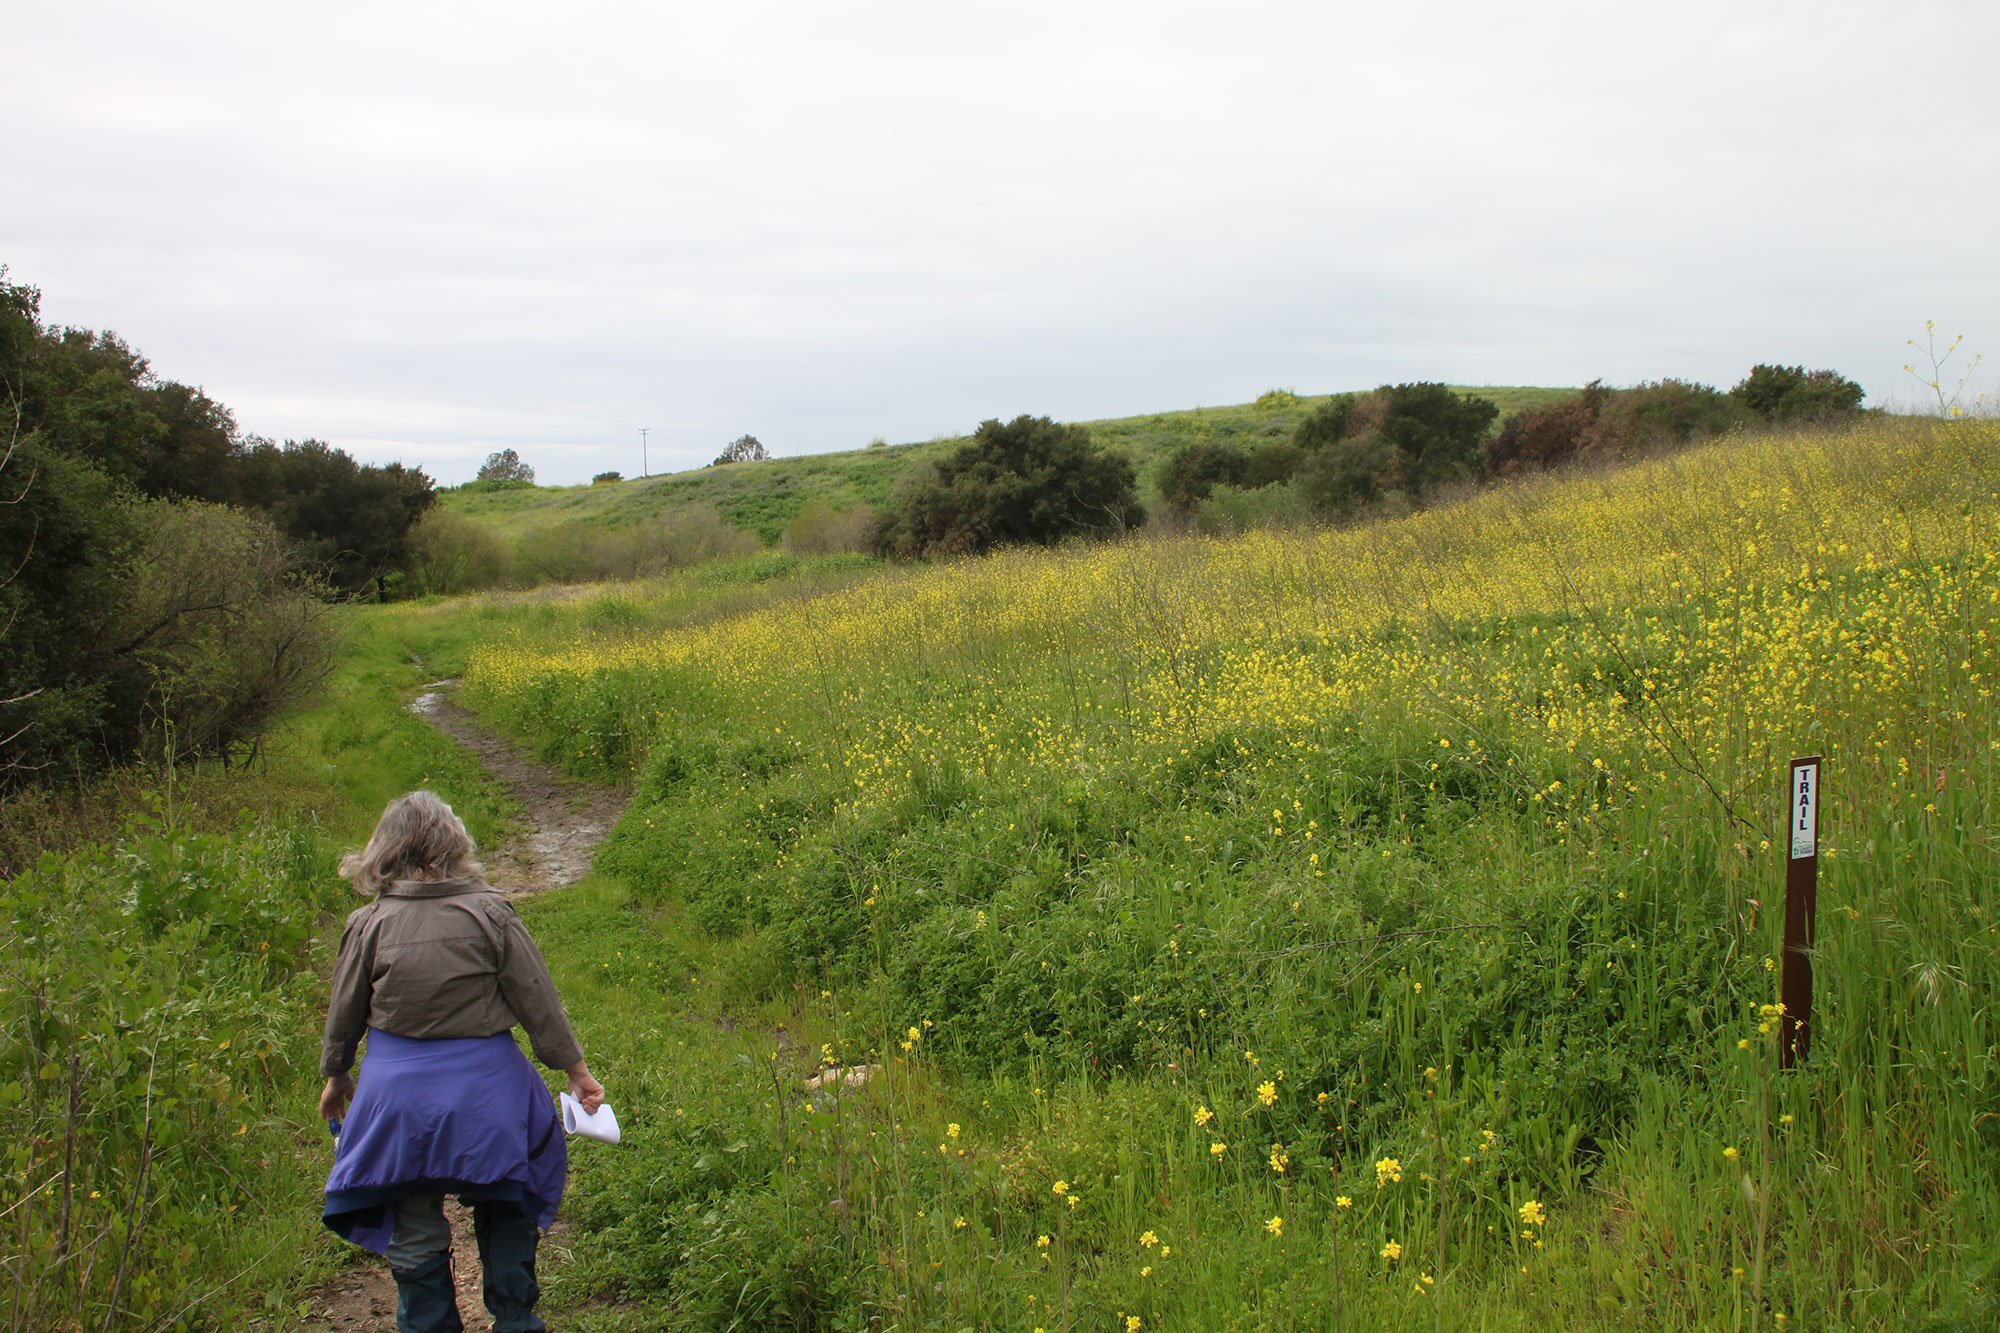 Large monocultures of black mustard are common throughout the San Marcos Foothills Preserve, crowding out native grasslands that so many of our native animals rely on,